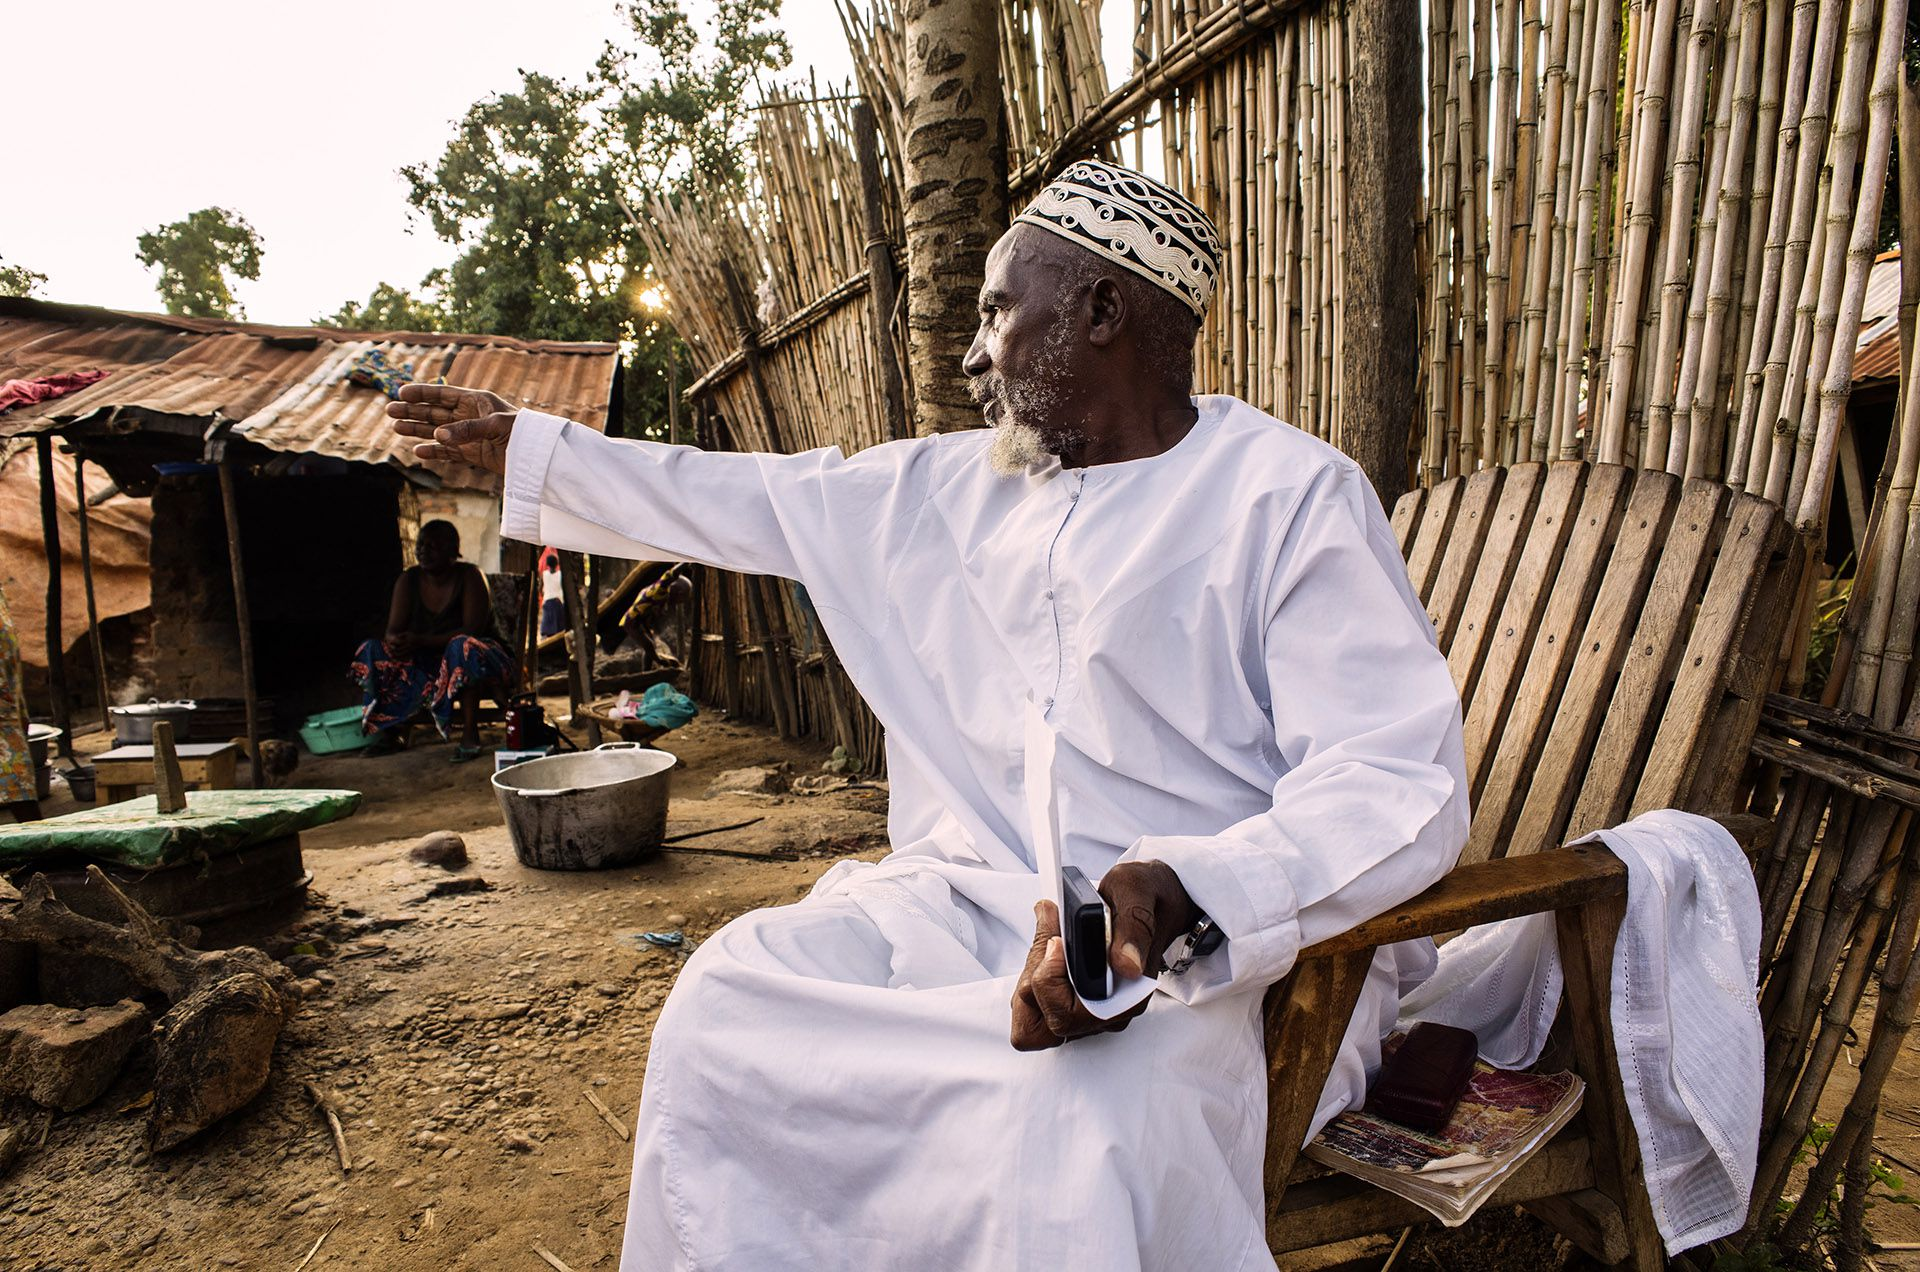 """Central African Refugees / DRC As the sun sets, Imam Moussa Bawa, 72, gestures toward his home in Zongo, Equateur Province, DRC on 29 August, 2014. The Imam was born in nearby Libenge, DRC and has lived in Zongo for 34 years. """"During the 34 years that I've been here, there have never been problems between Christians and Muslims,"""" he says. """"In Bangui [capital of neighboring Central African Republic] mosques have been destroyed. I've heard that more than 200 mosques have been destroyed in CAR. It's a political problem. There is a need for reconciliation, and I'm ready to help."""" Conflict in CAR has caused more than a million people to flee their homes, one-quarter of them crossing an international border in their search for safety. Inter-communal violence between Christians and Muslims in CAR has further complicated the situation, for both those still inside the country, and for refugees abroad. UNHCR / B. Sokol / August 2014"""